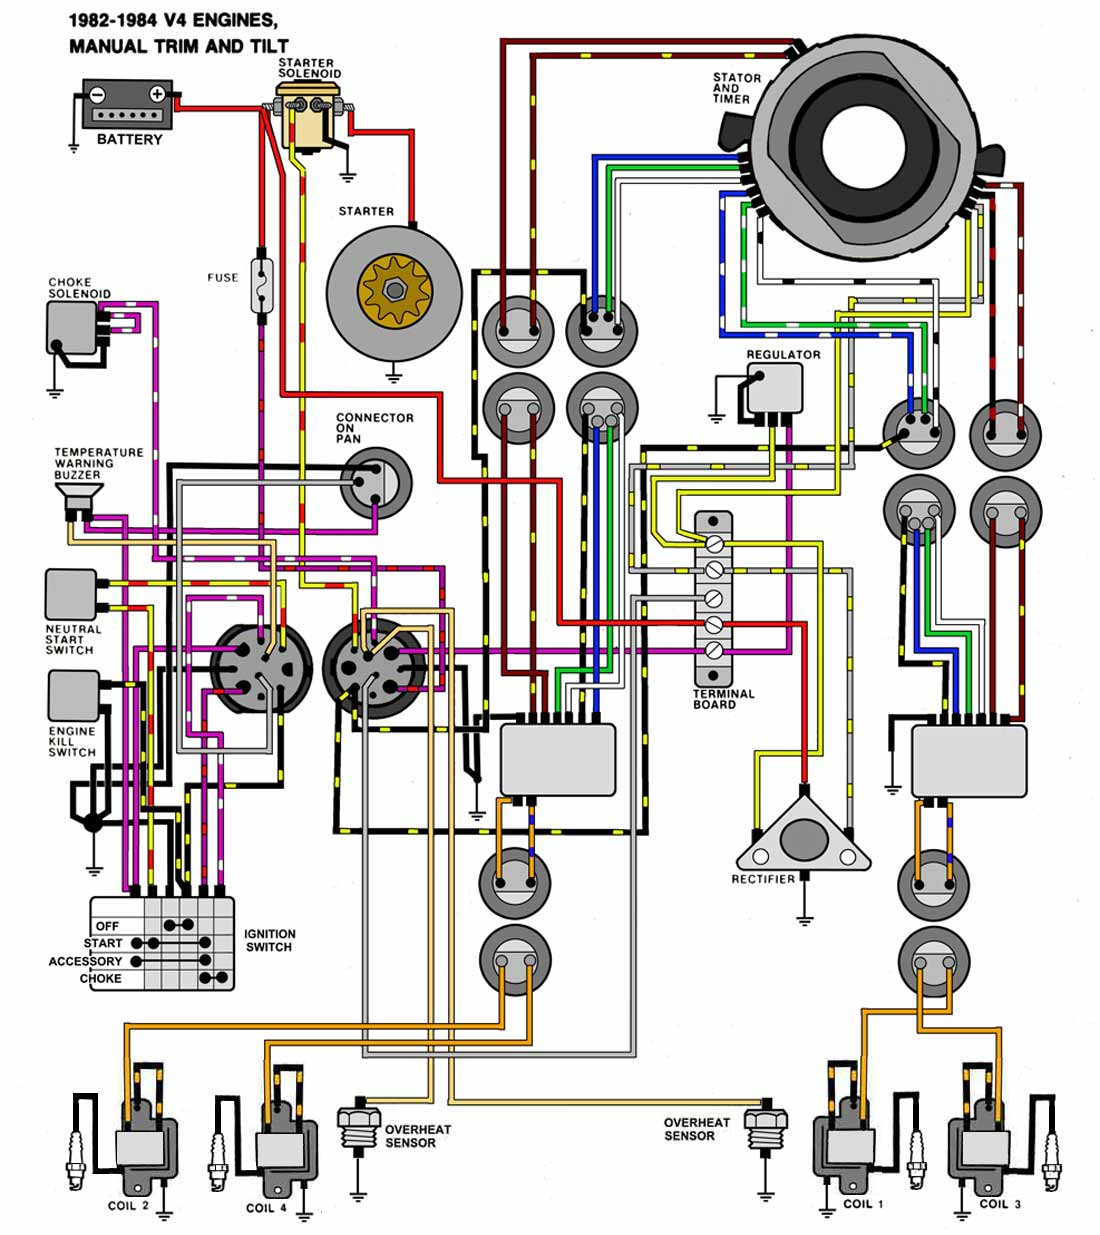 82_84_V4_NOTNT evinrude ignition wiring diagram evinrude 40 hp outboard diagrams 35 Evinrude Wiring Diagram at suagrazia.org